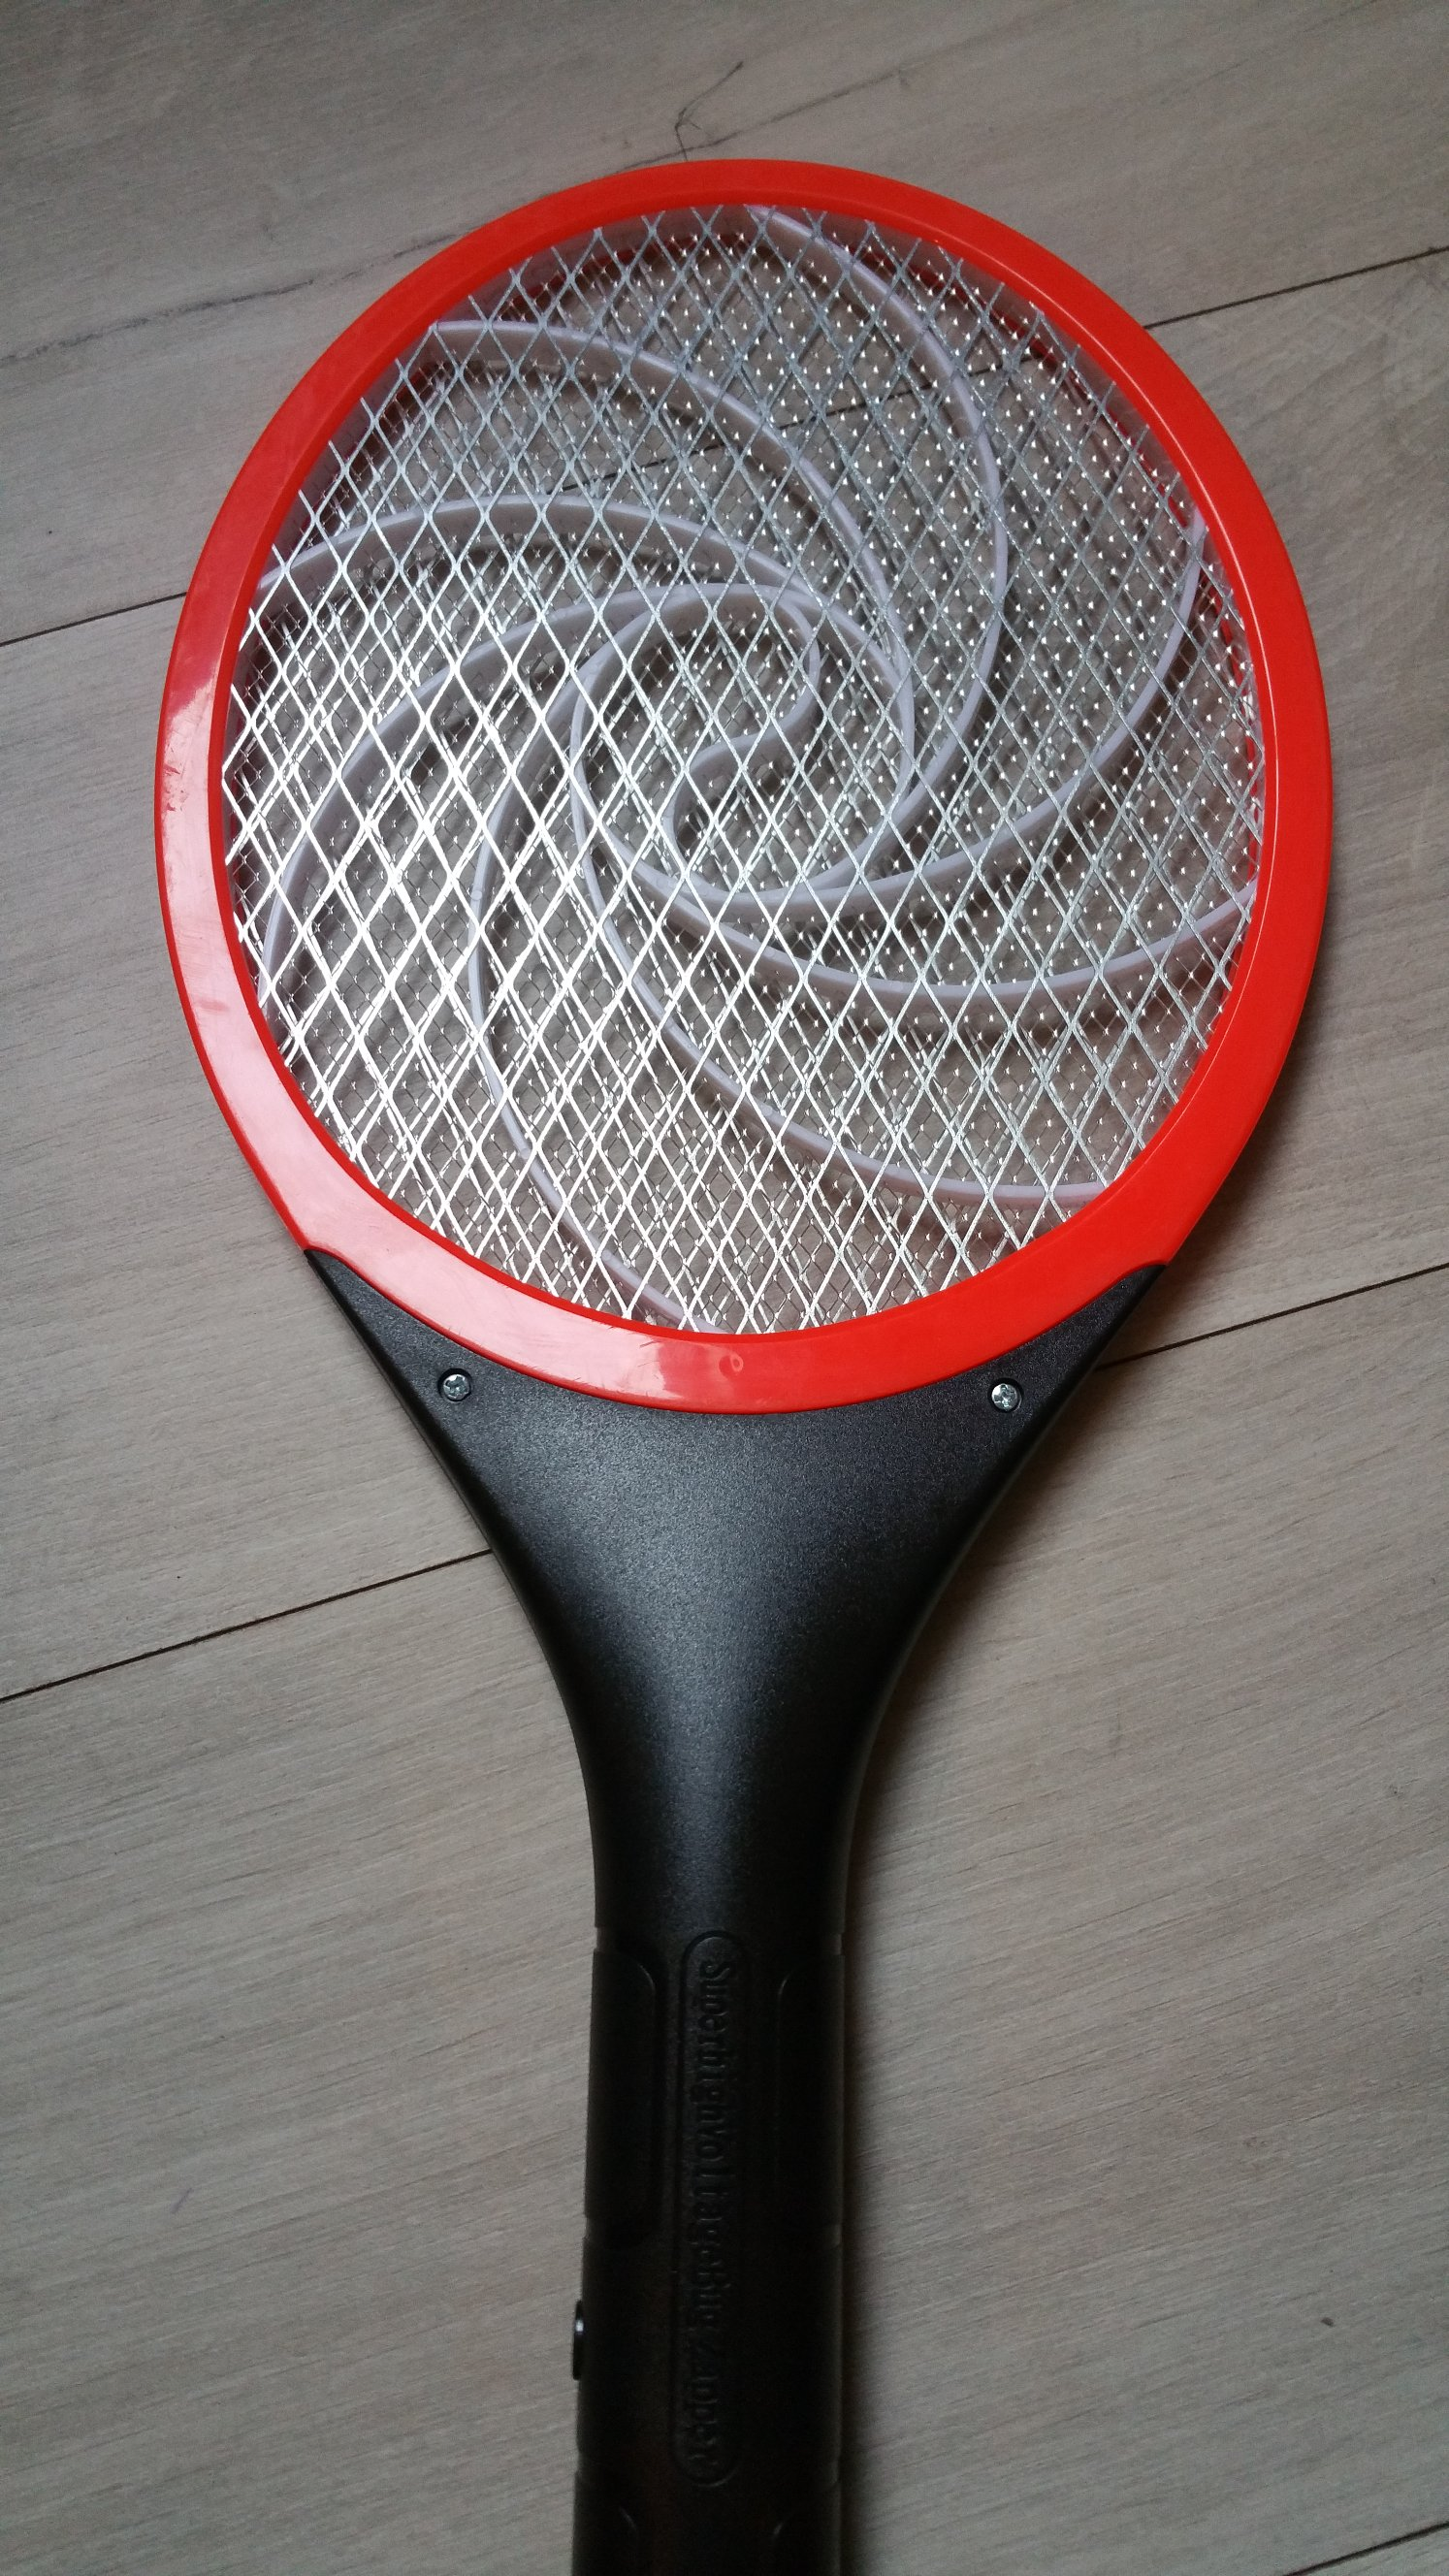 Tennis racket insect zapper